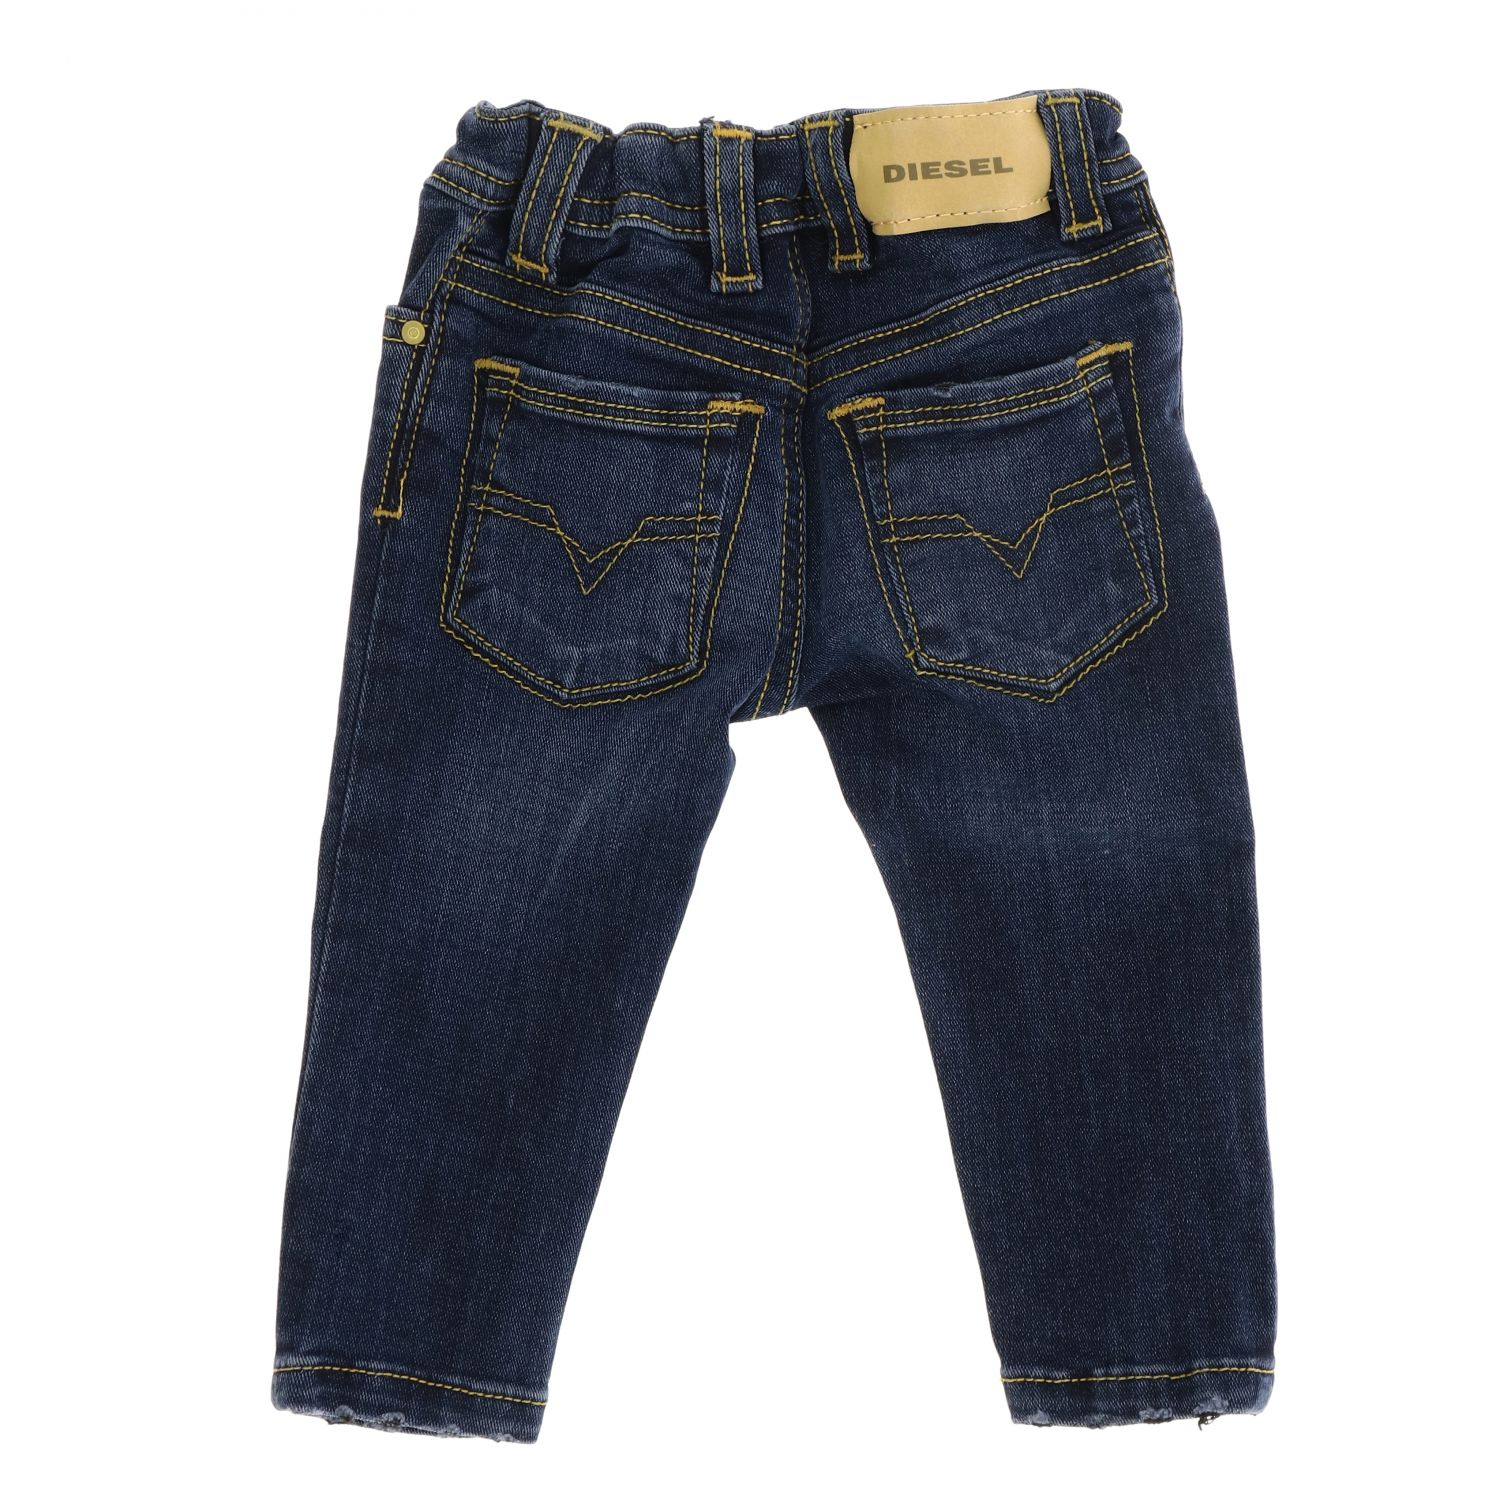 Sleenker Stretch Diesel Jeans aus Denim blau 2